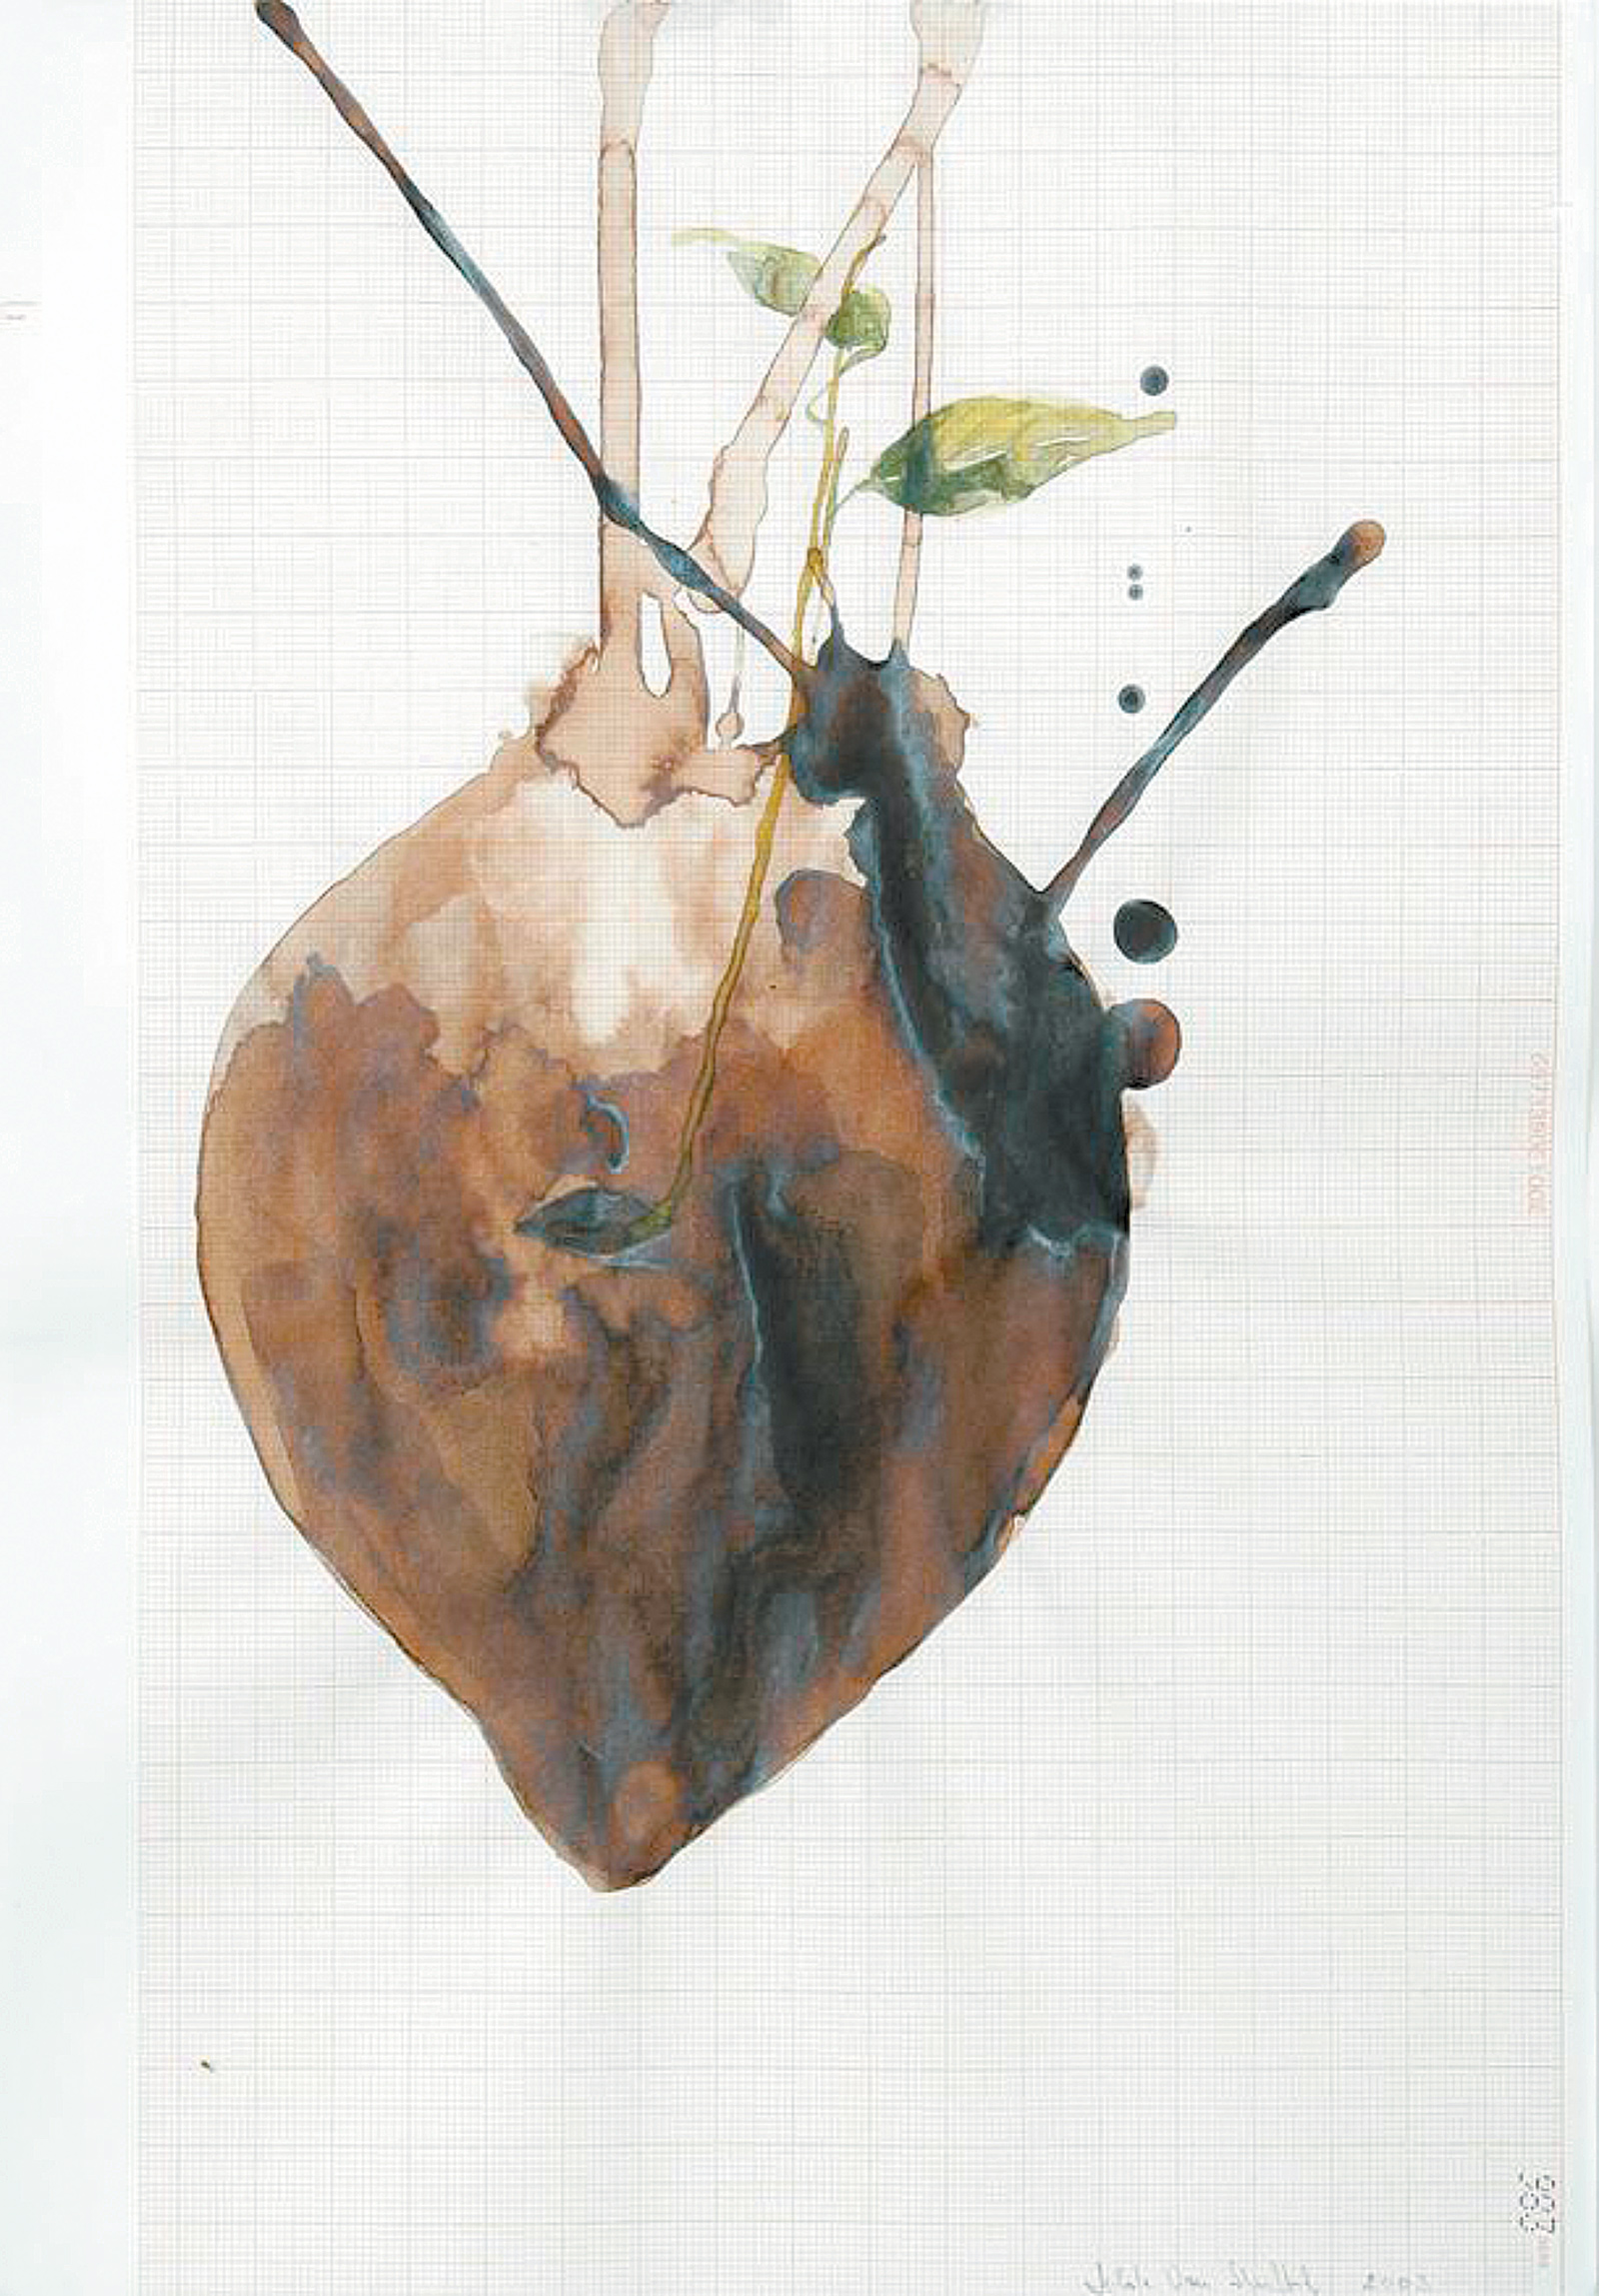 Hilde Van Huffel: Hart-en, 2005; from 'The Heart,' a 2007 exhibition at the Wellcome Collection, London